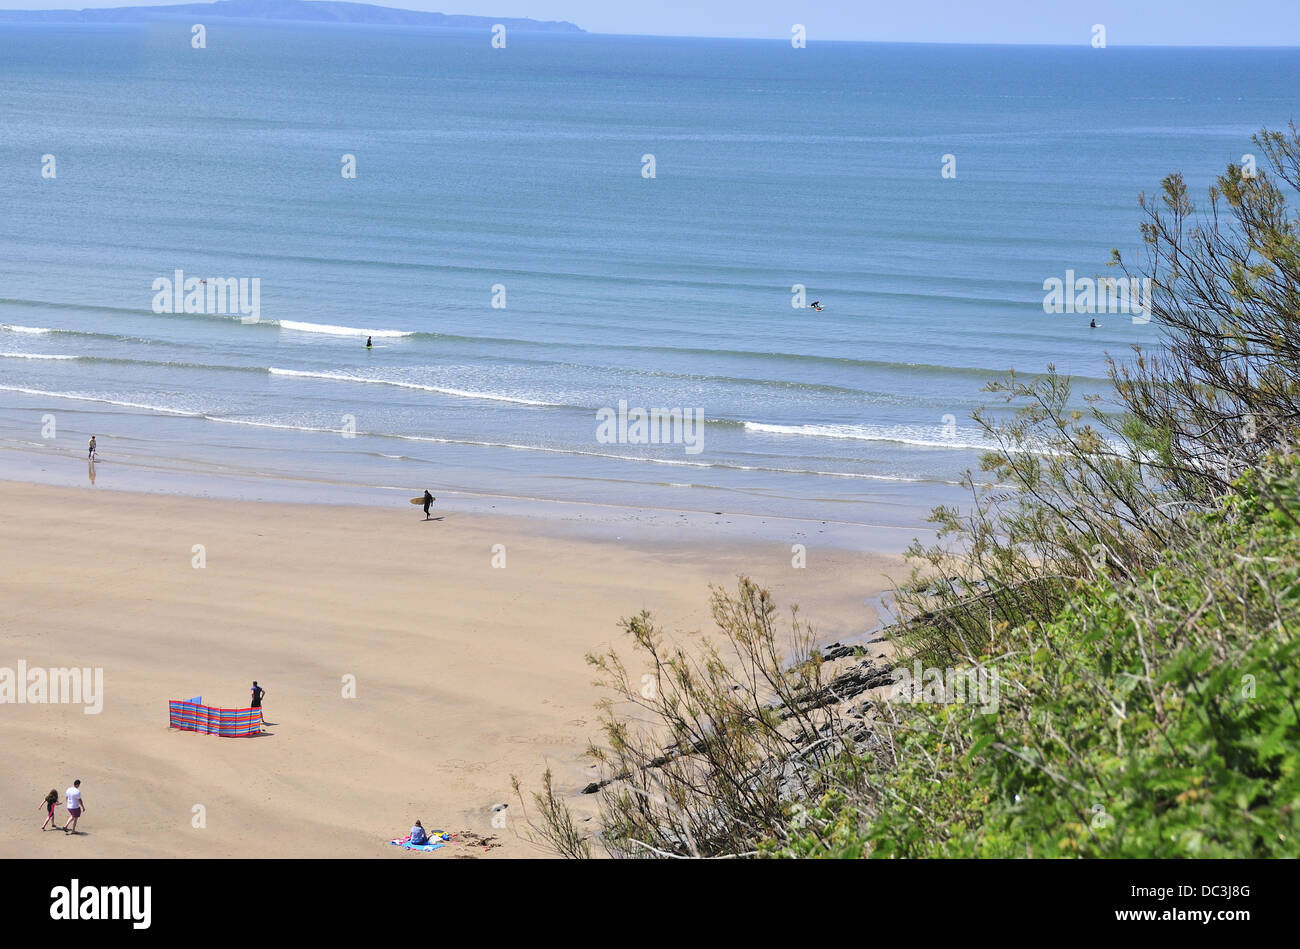 Surfers on the waves at  Saunton sands, A long stretch of sand with gentle shoal, one of north Devon famous surfing - Stock Image